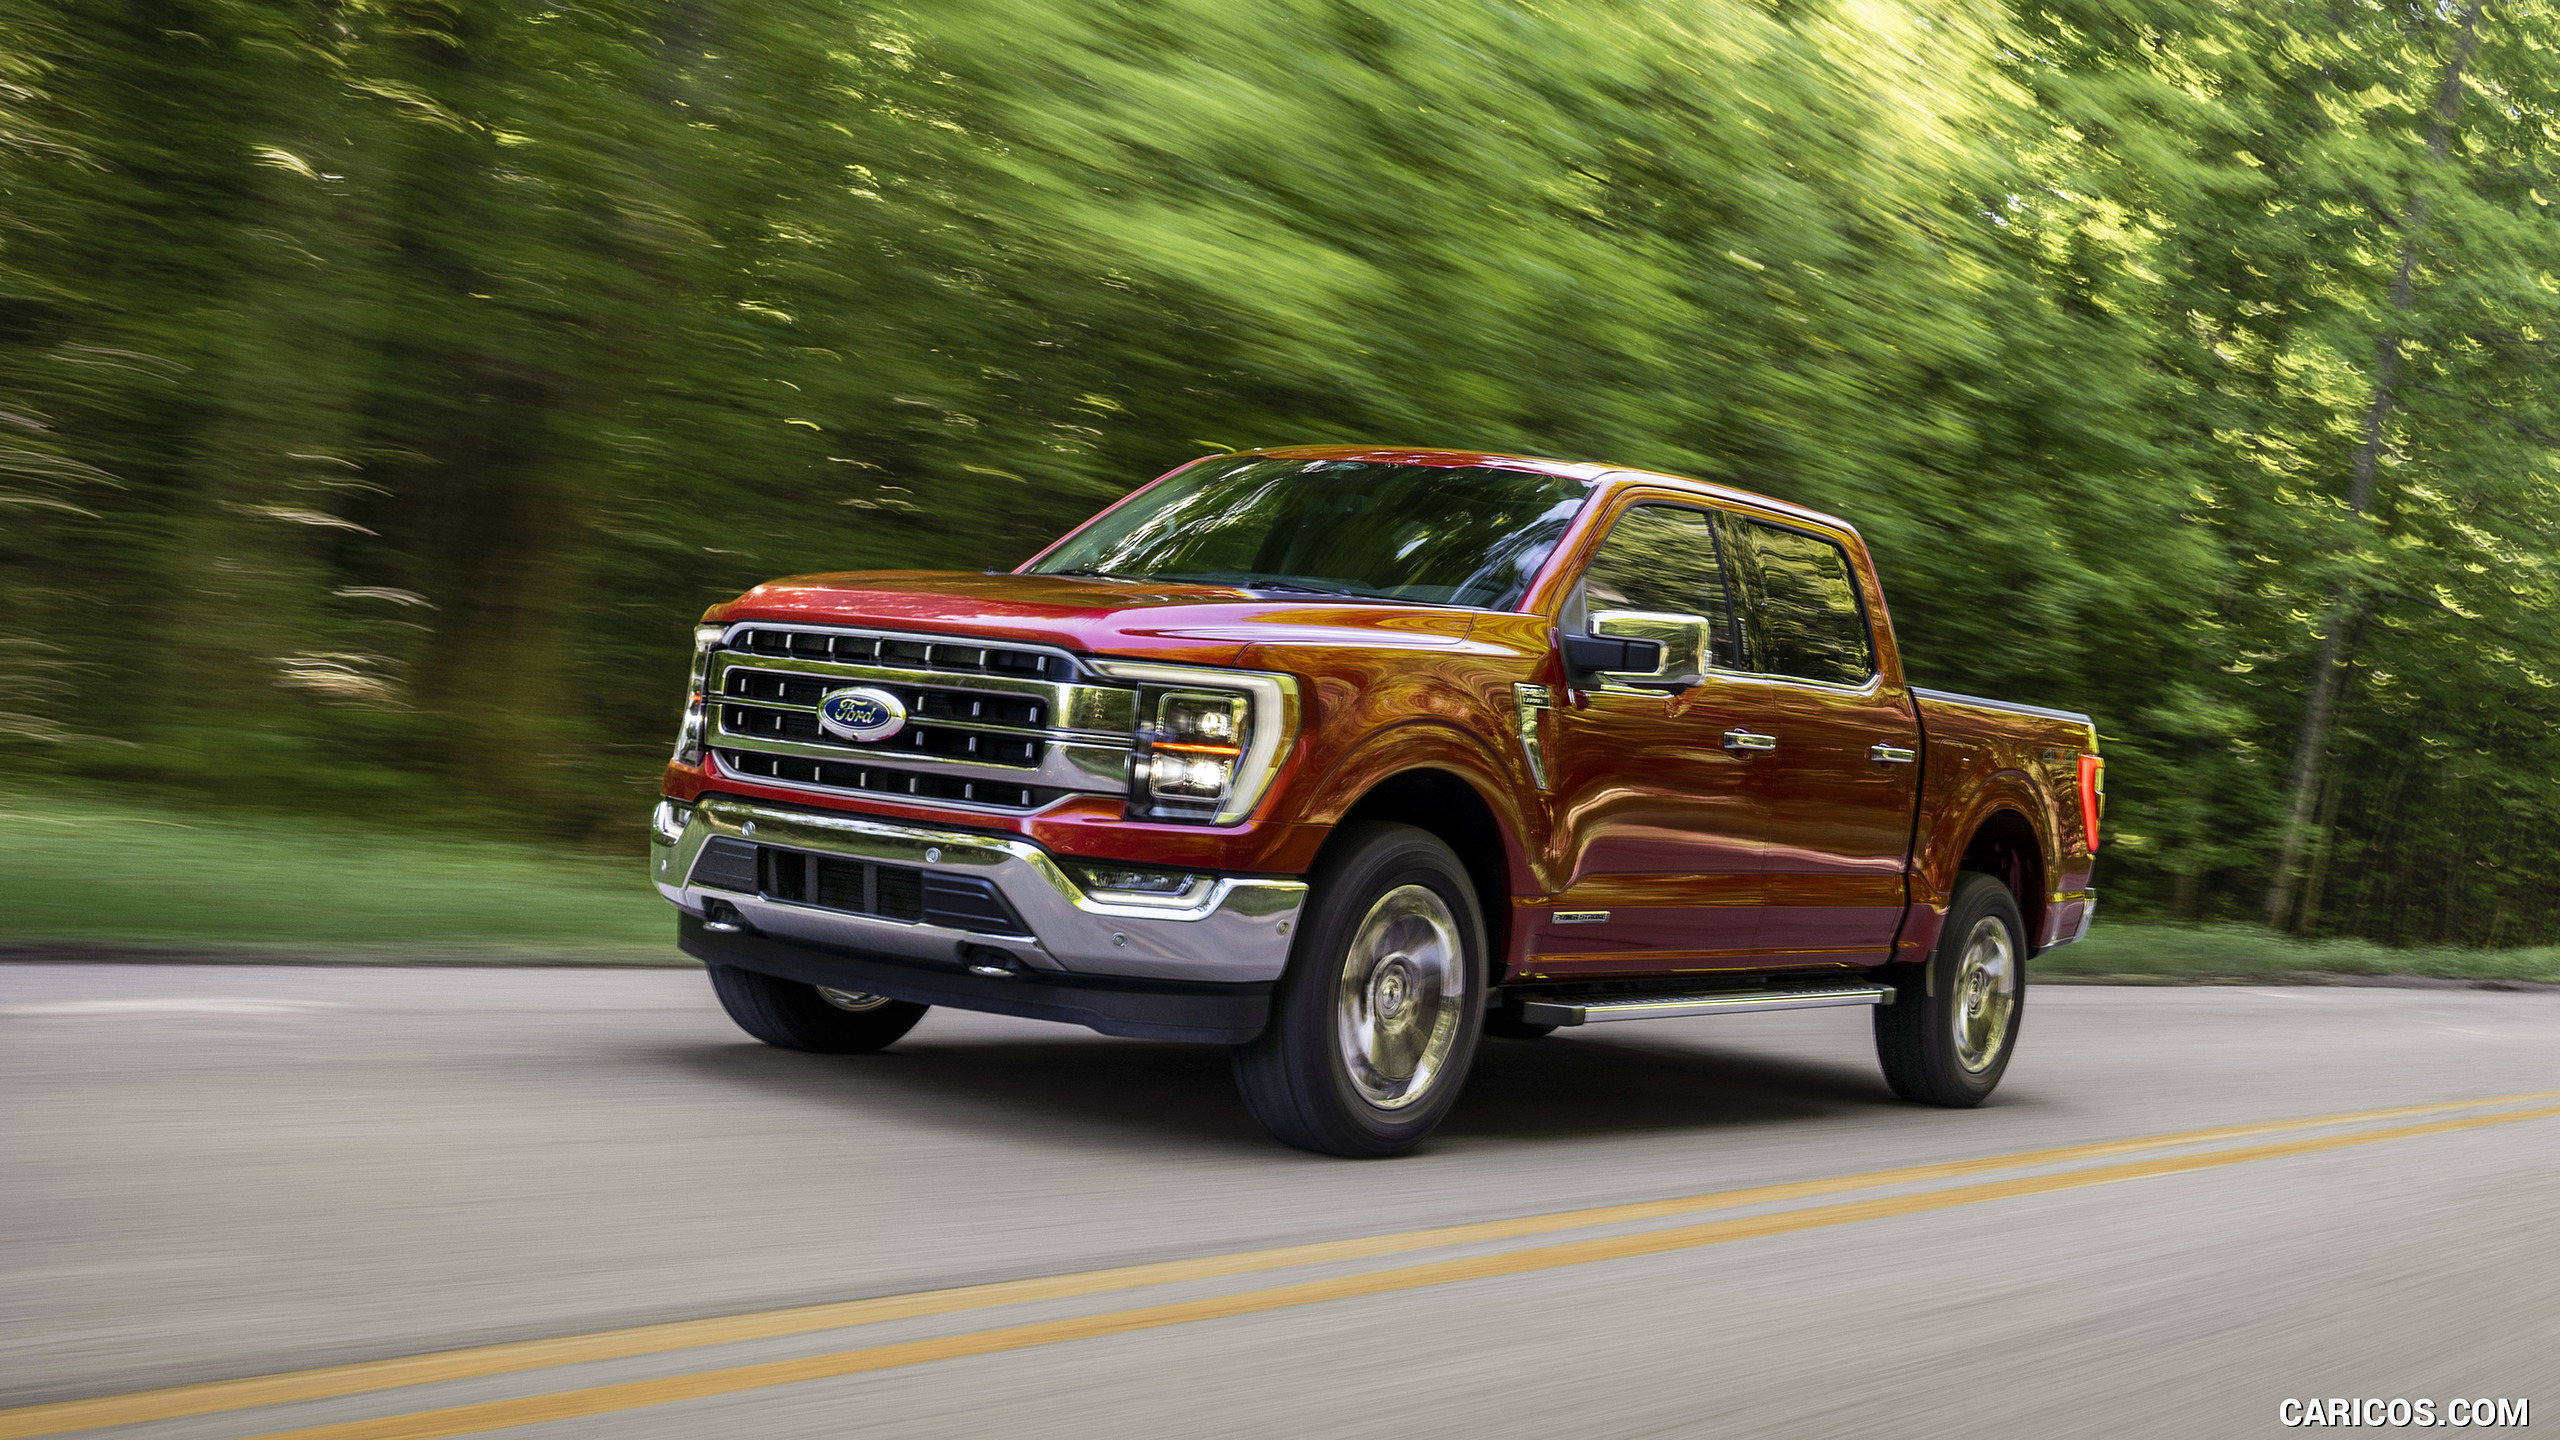 2021 Ford F 150 Lariat Color Rapid Red Metallic   Front Three 2560x1440